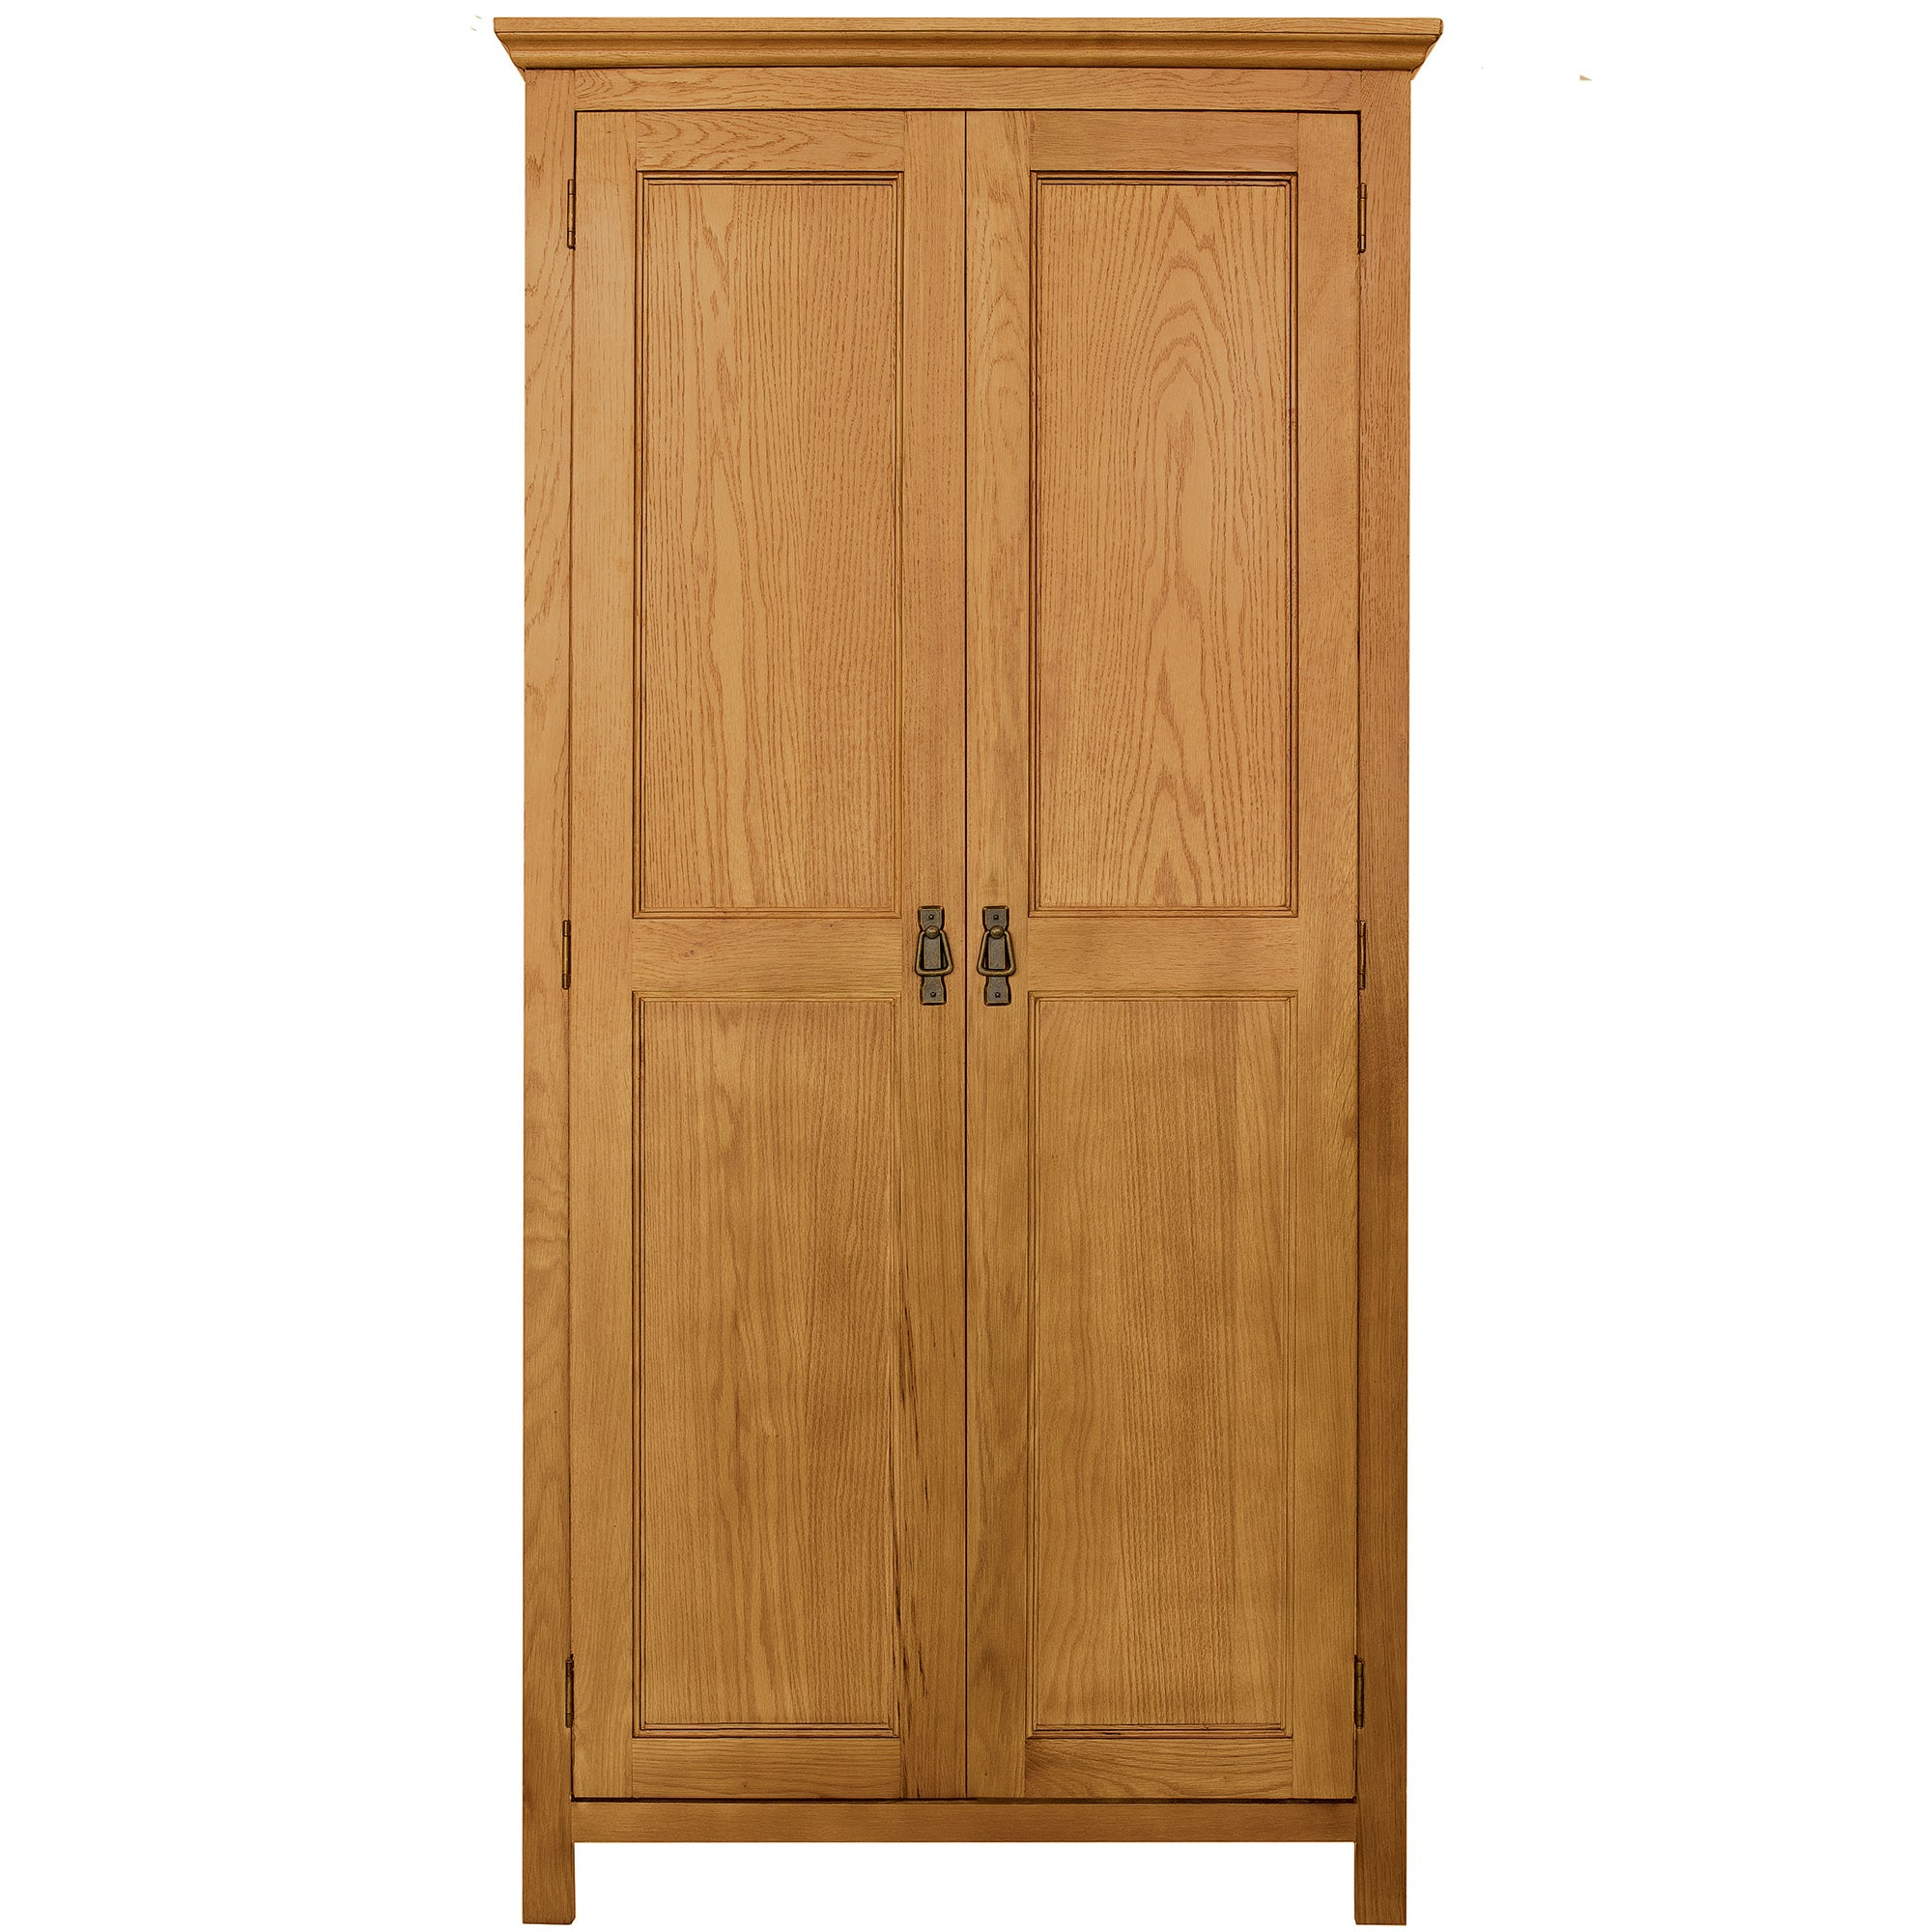 Photo of Dorchester oak double wardrobe light brown / natural